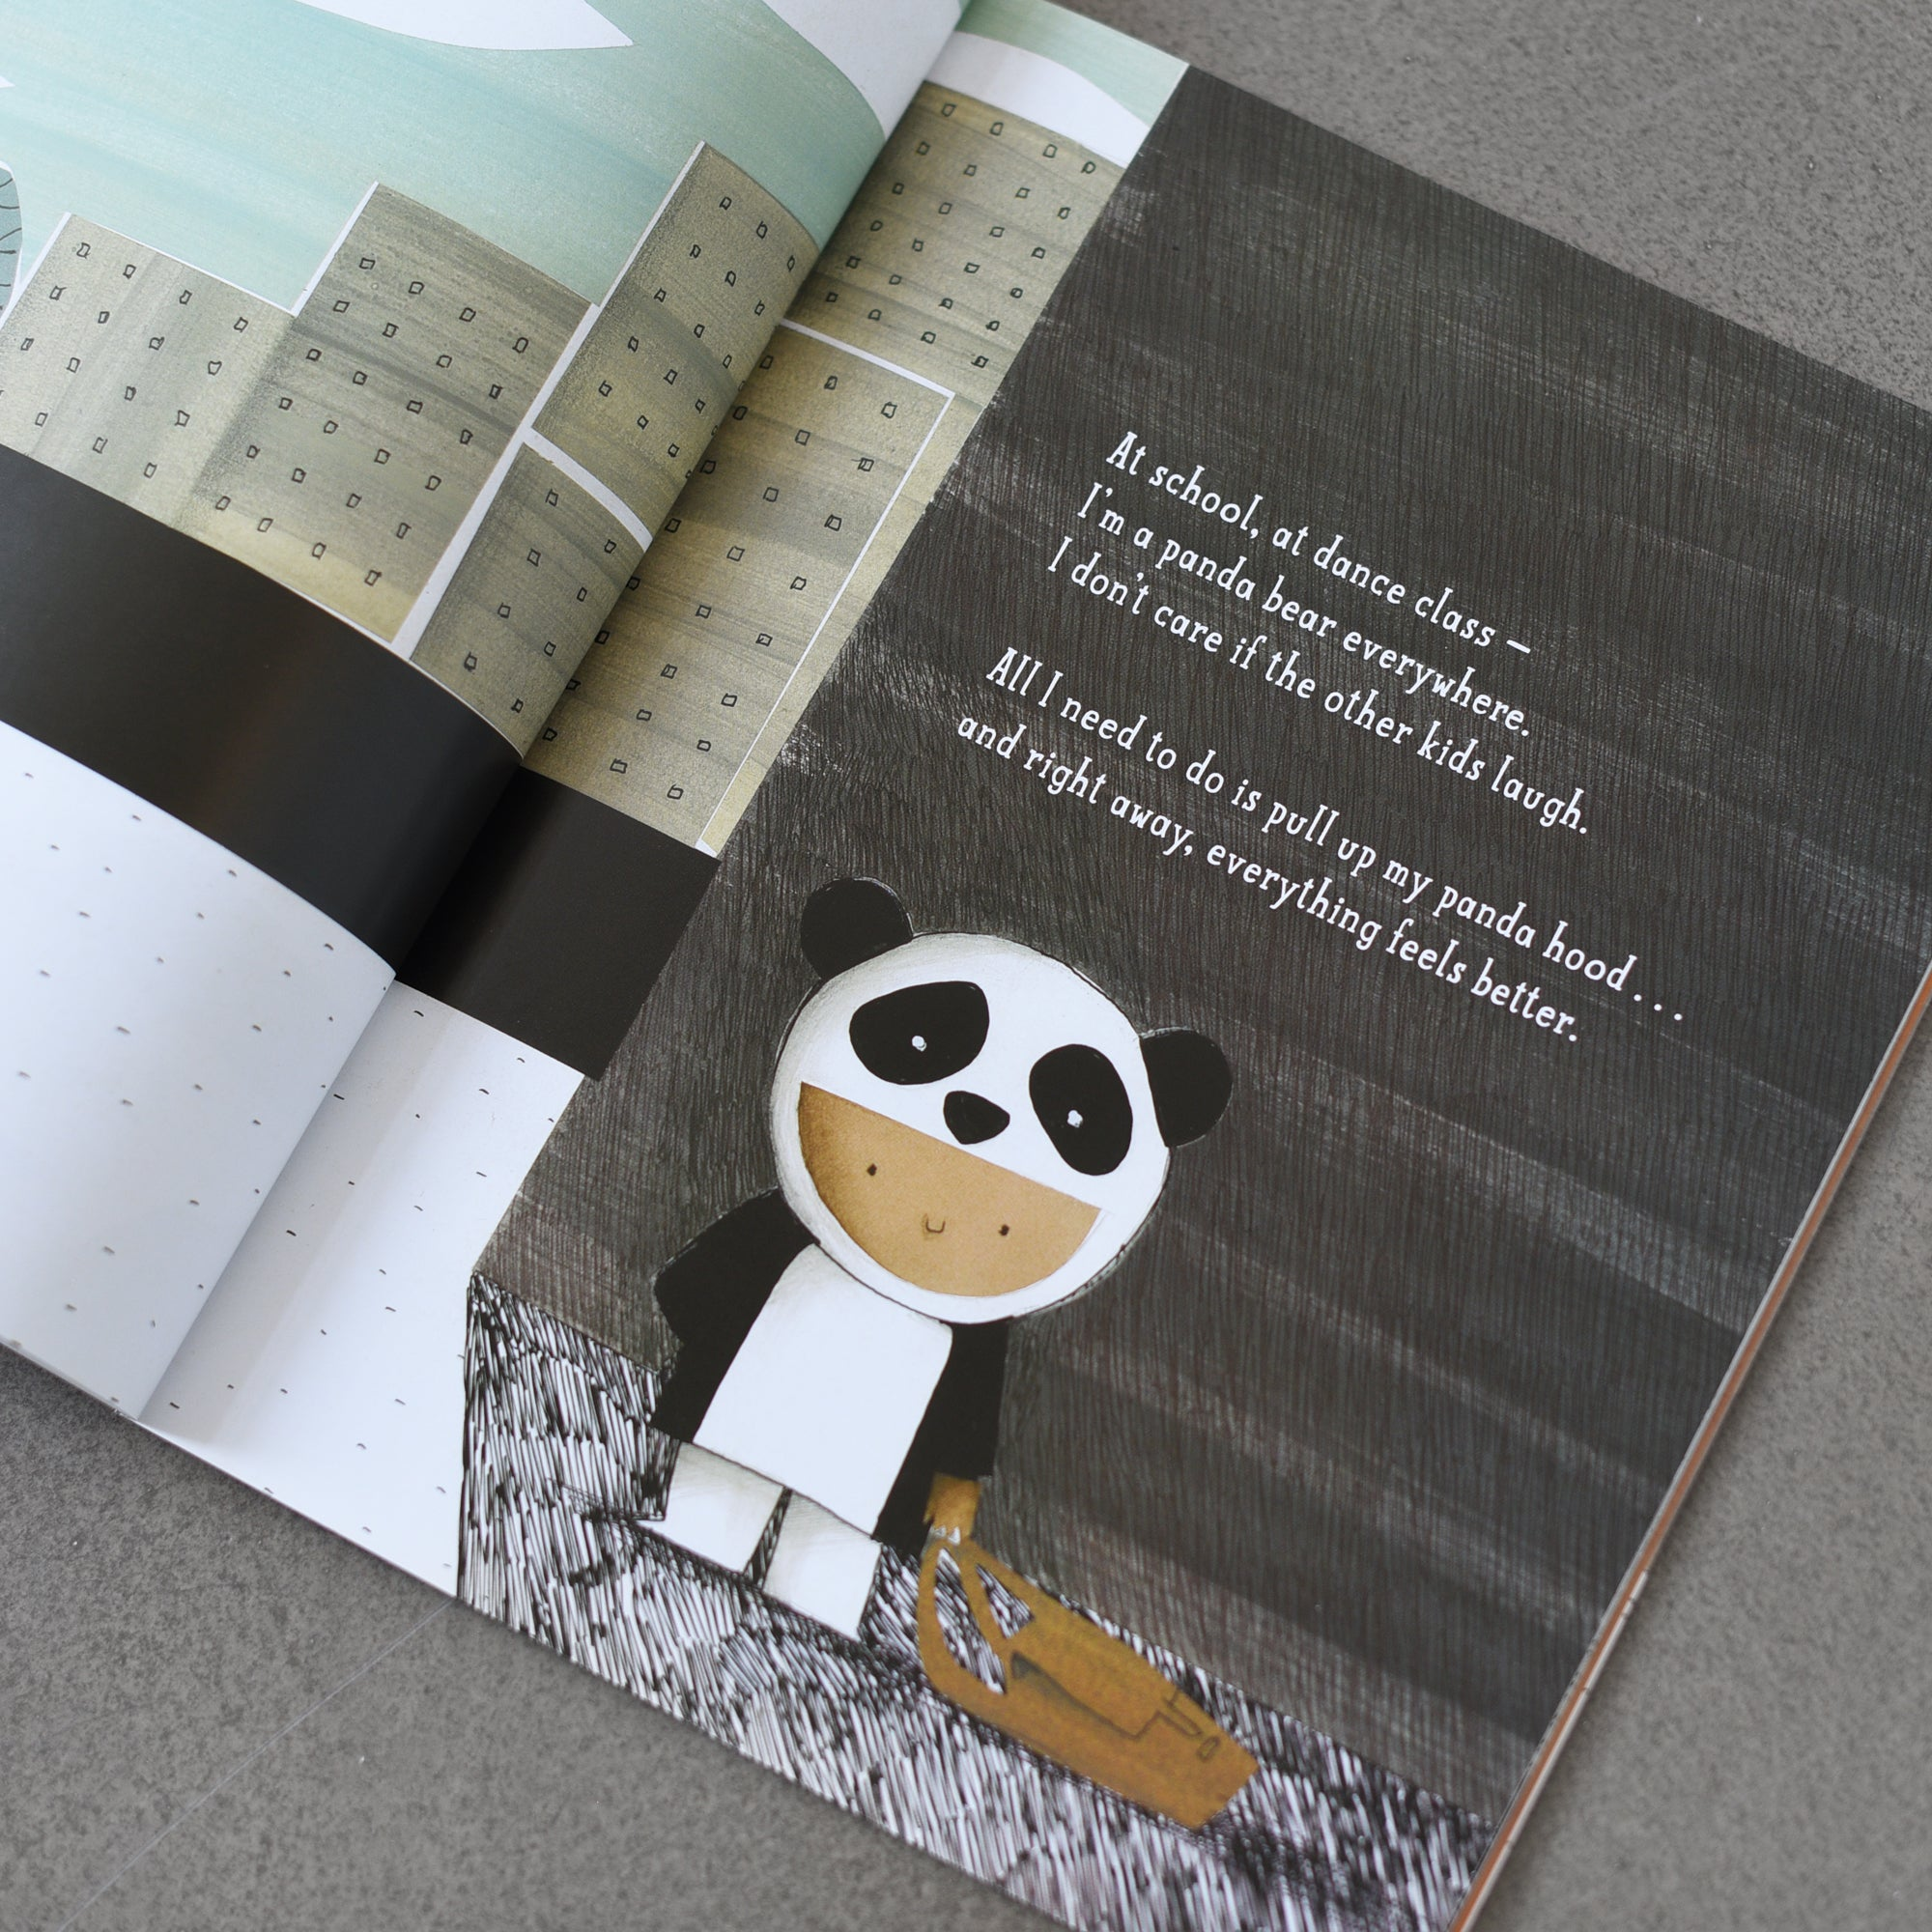 My Panda Sweater - written by Gilles Baum, illustrated by Barroux